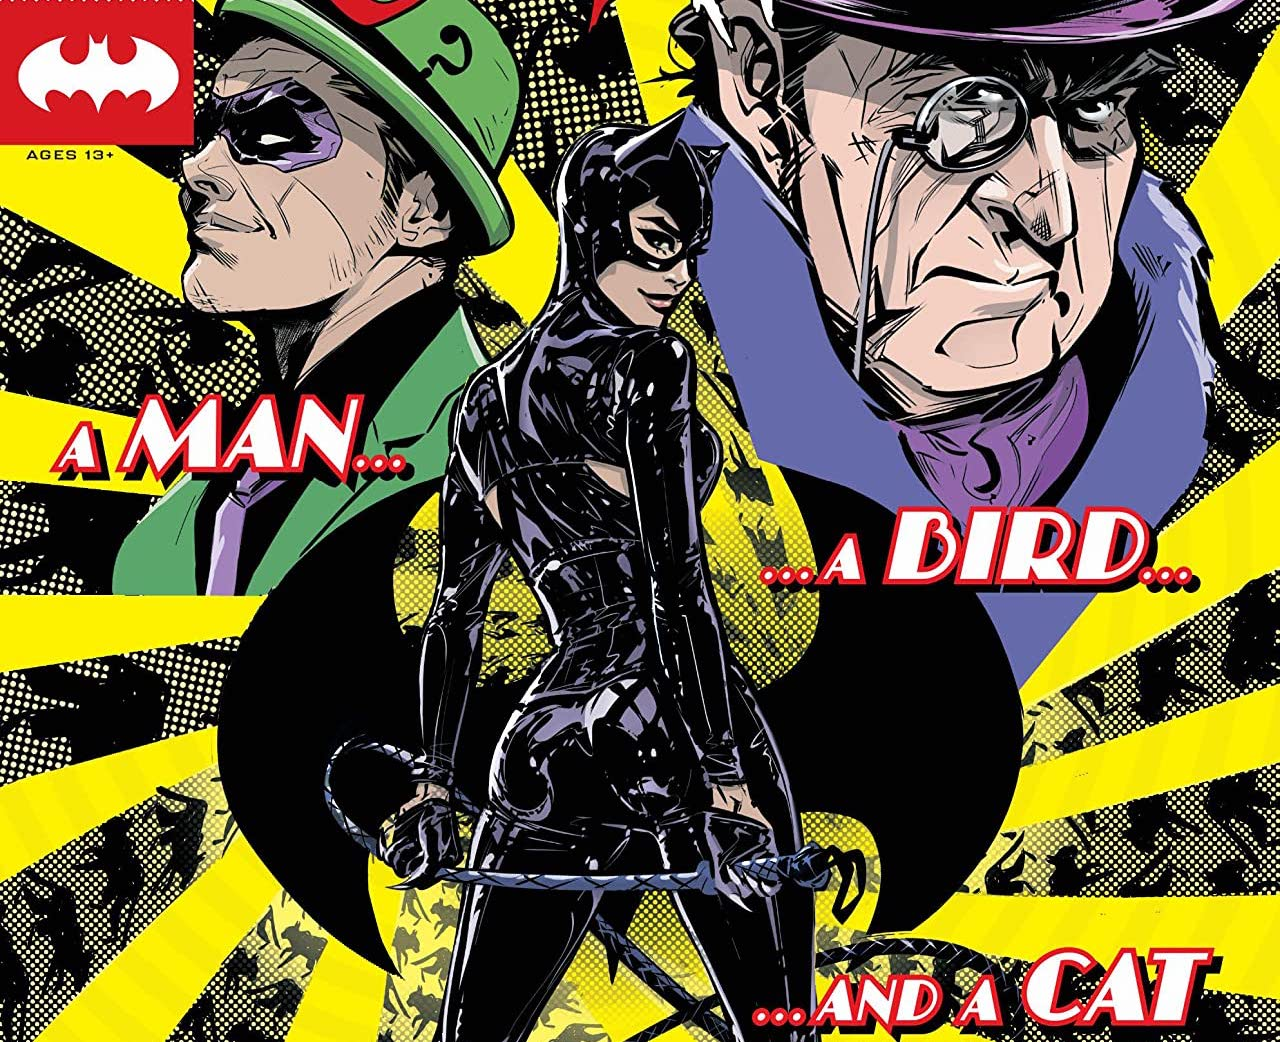 Enjoy three doses of Catwoman across three different stories.